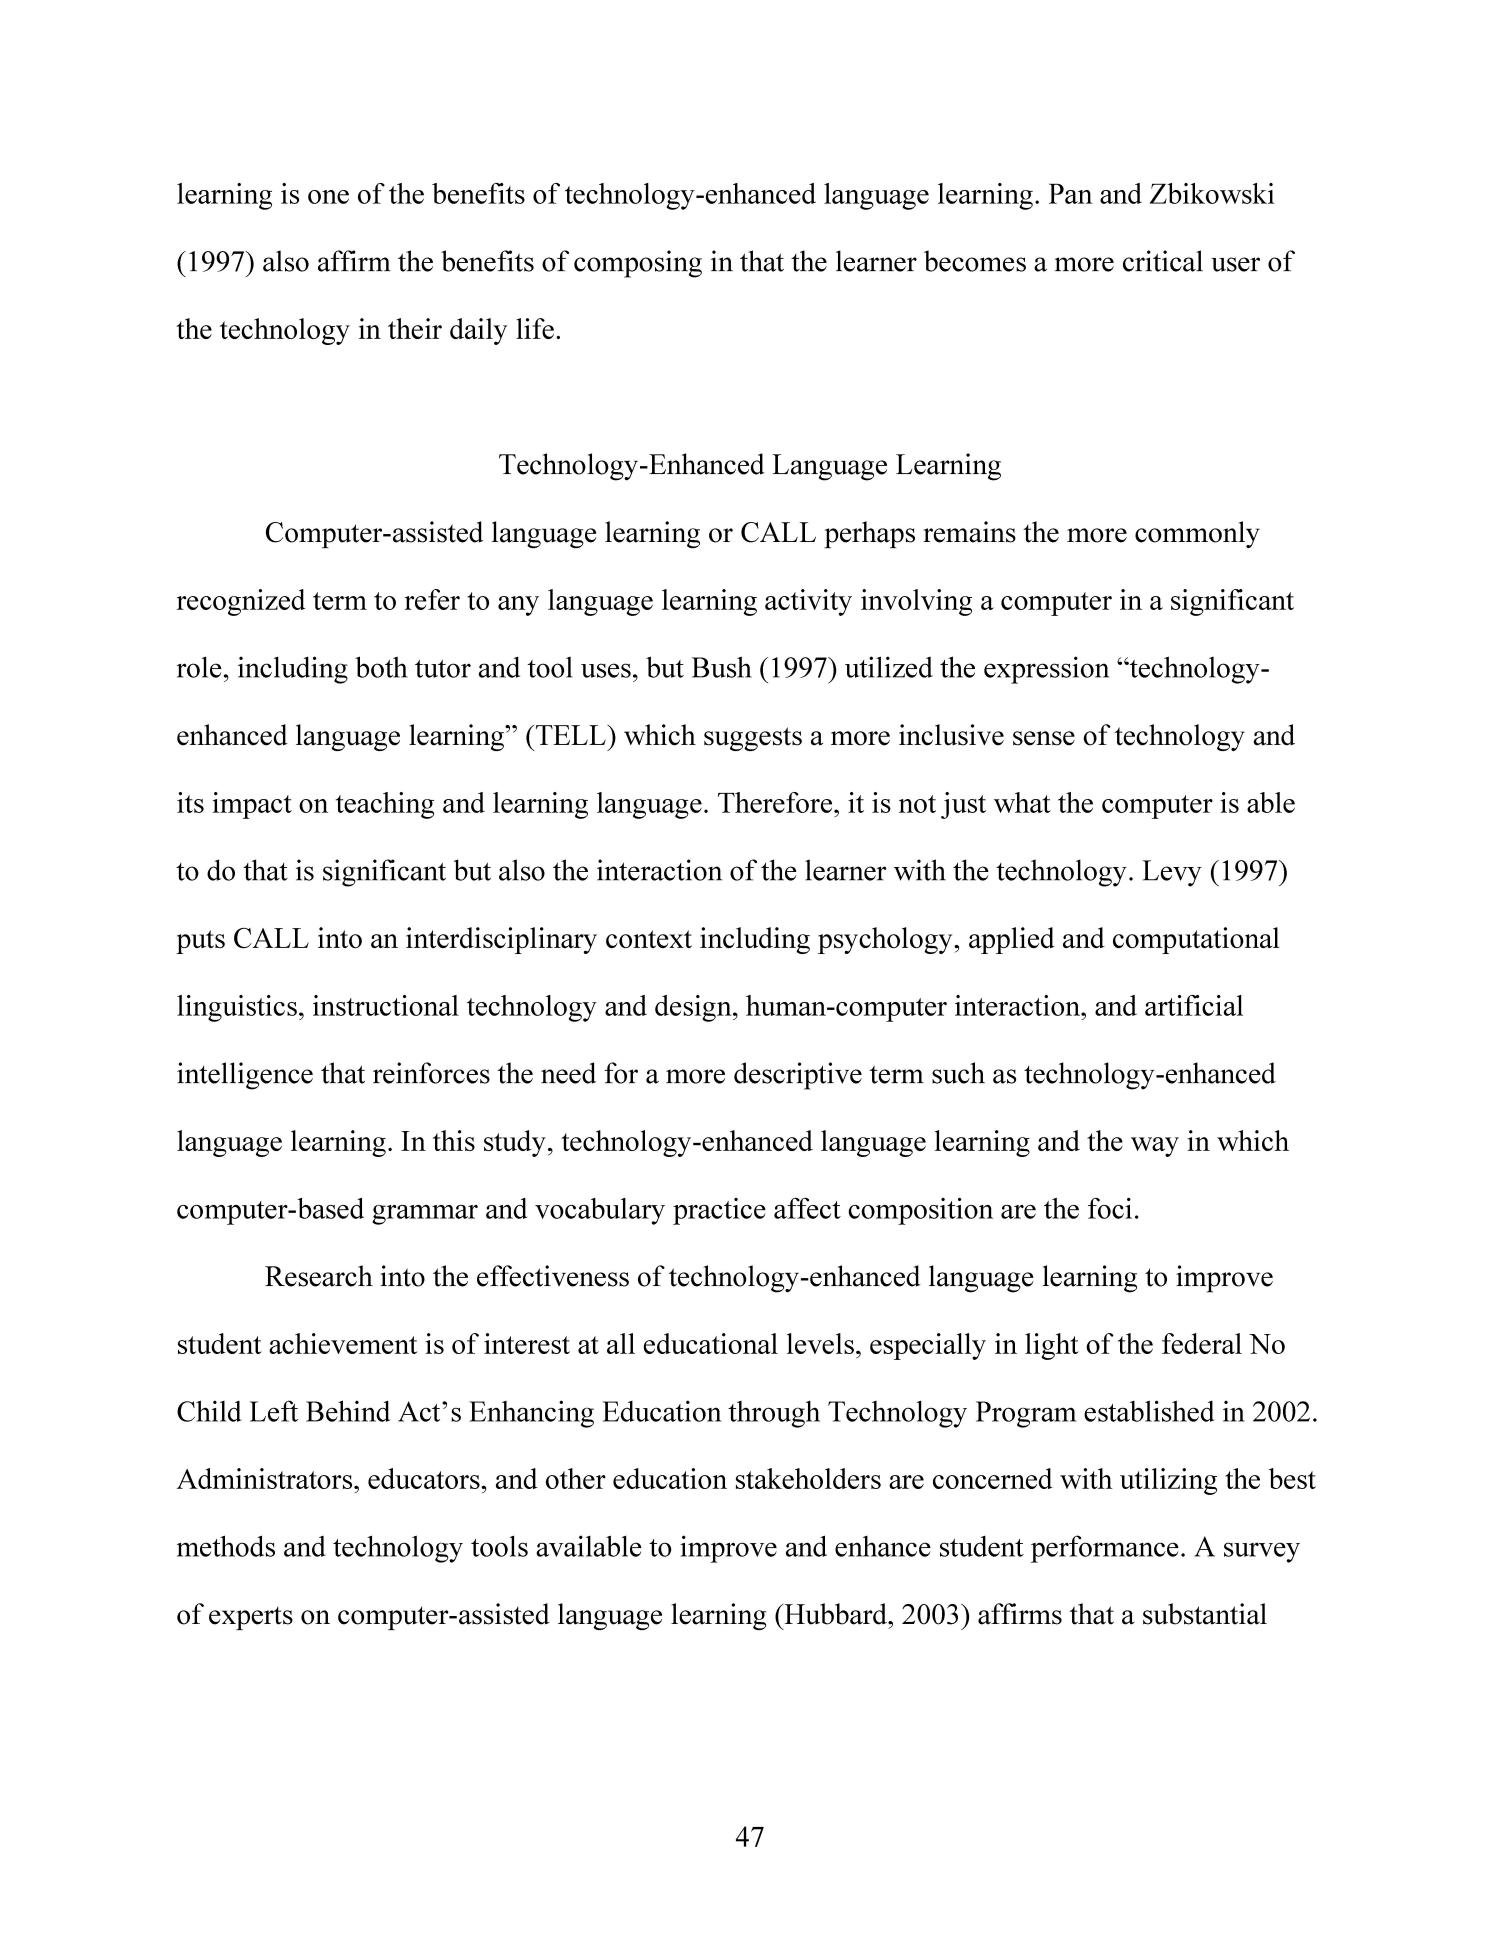 Effects of Technology-Enhanced Language Learning on Second Language Composition of University-Level Intermediate Spanish Students                                                                                                      47